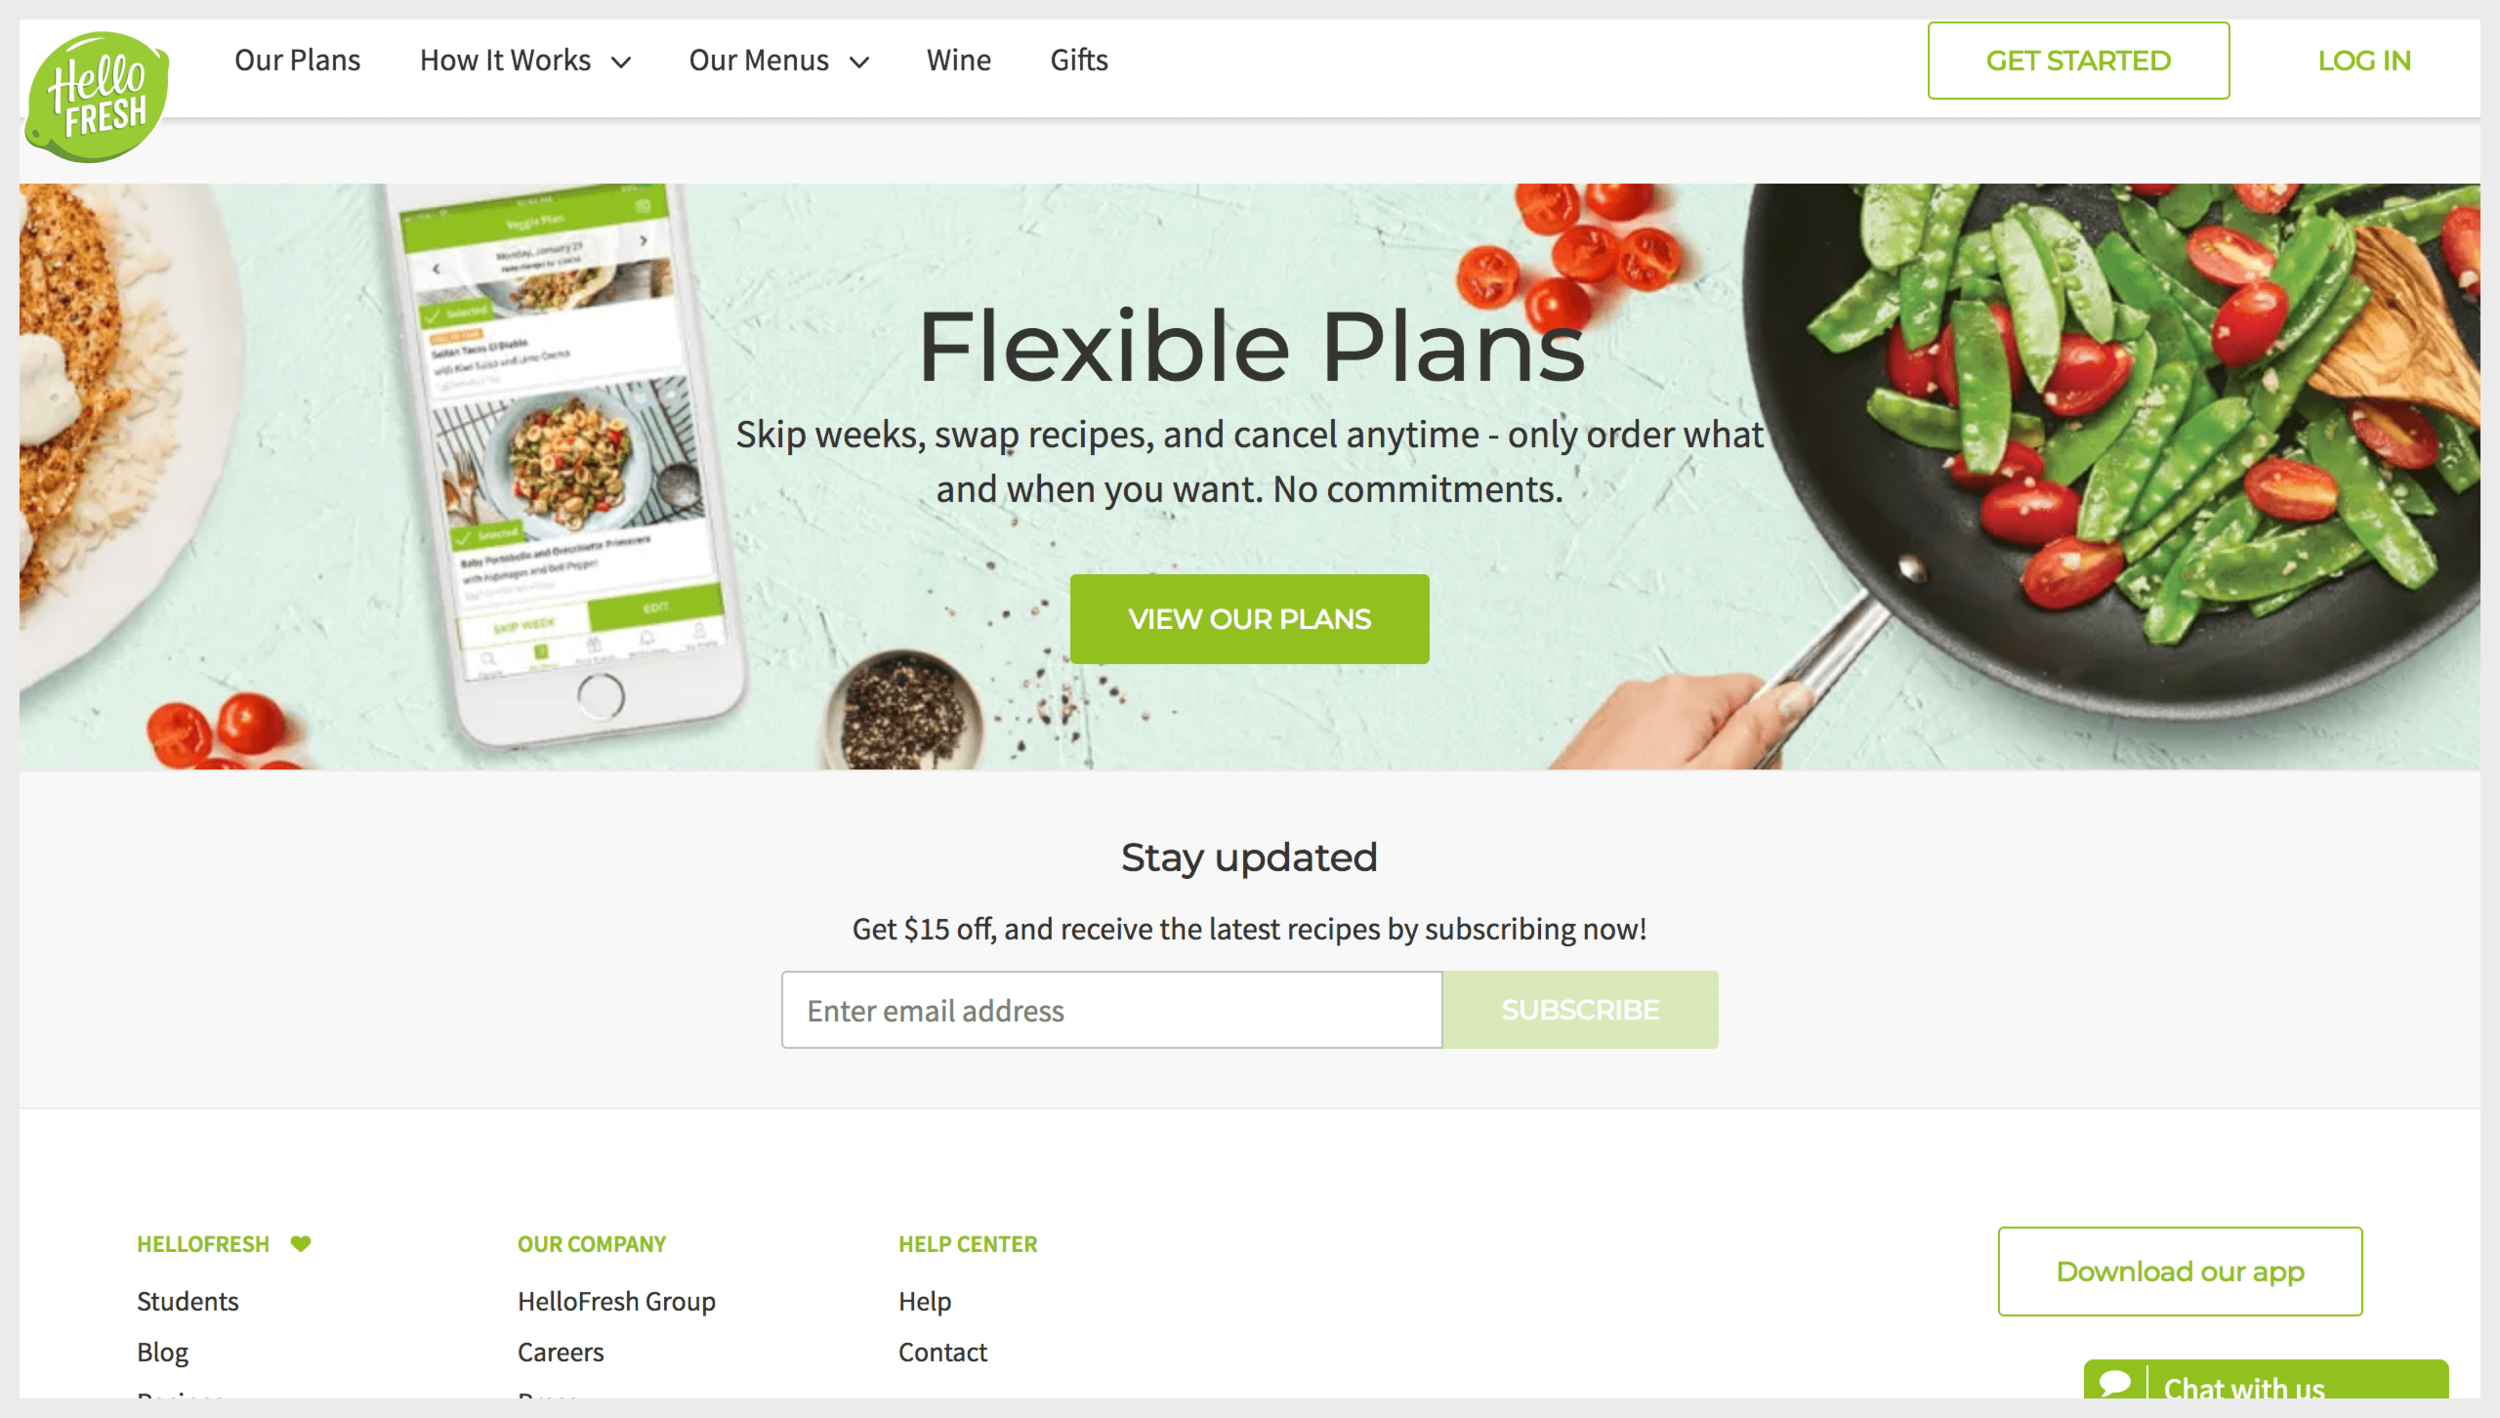 Hello Fresh's homepage with a primary call to action at the bottom of the page